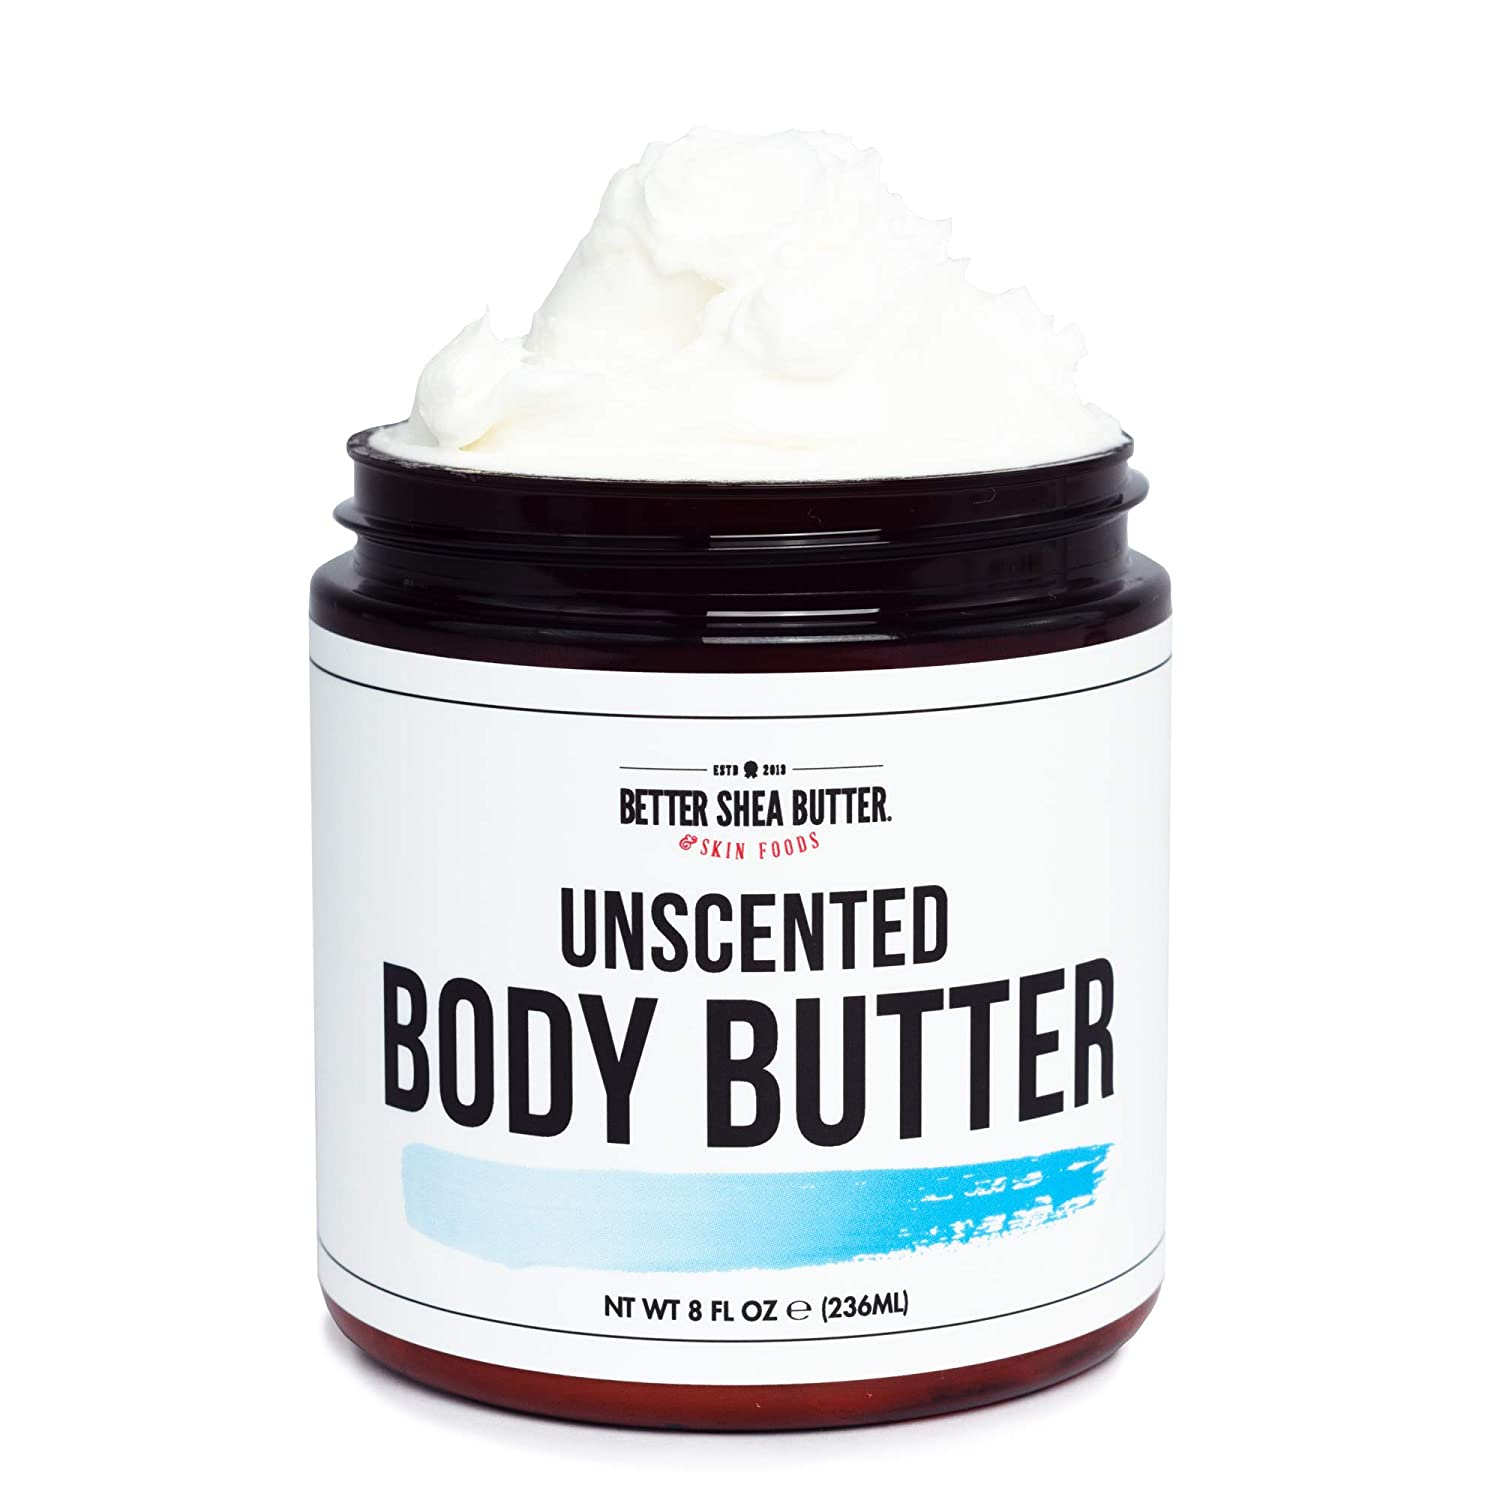 Unscented Whipped Body Butter for Dry Skin - Intense 24-Hour Hydrating Cream, with Shea Butter and Aloe Vera - Paraben Free, Non Greasy, No Synthetic Fragrances - 8 oz